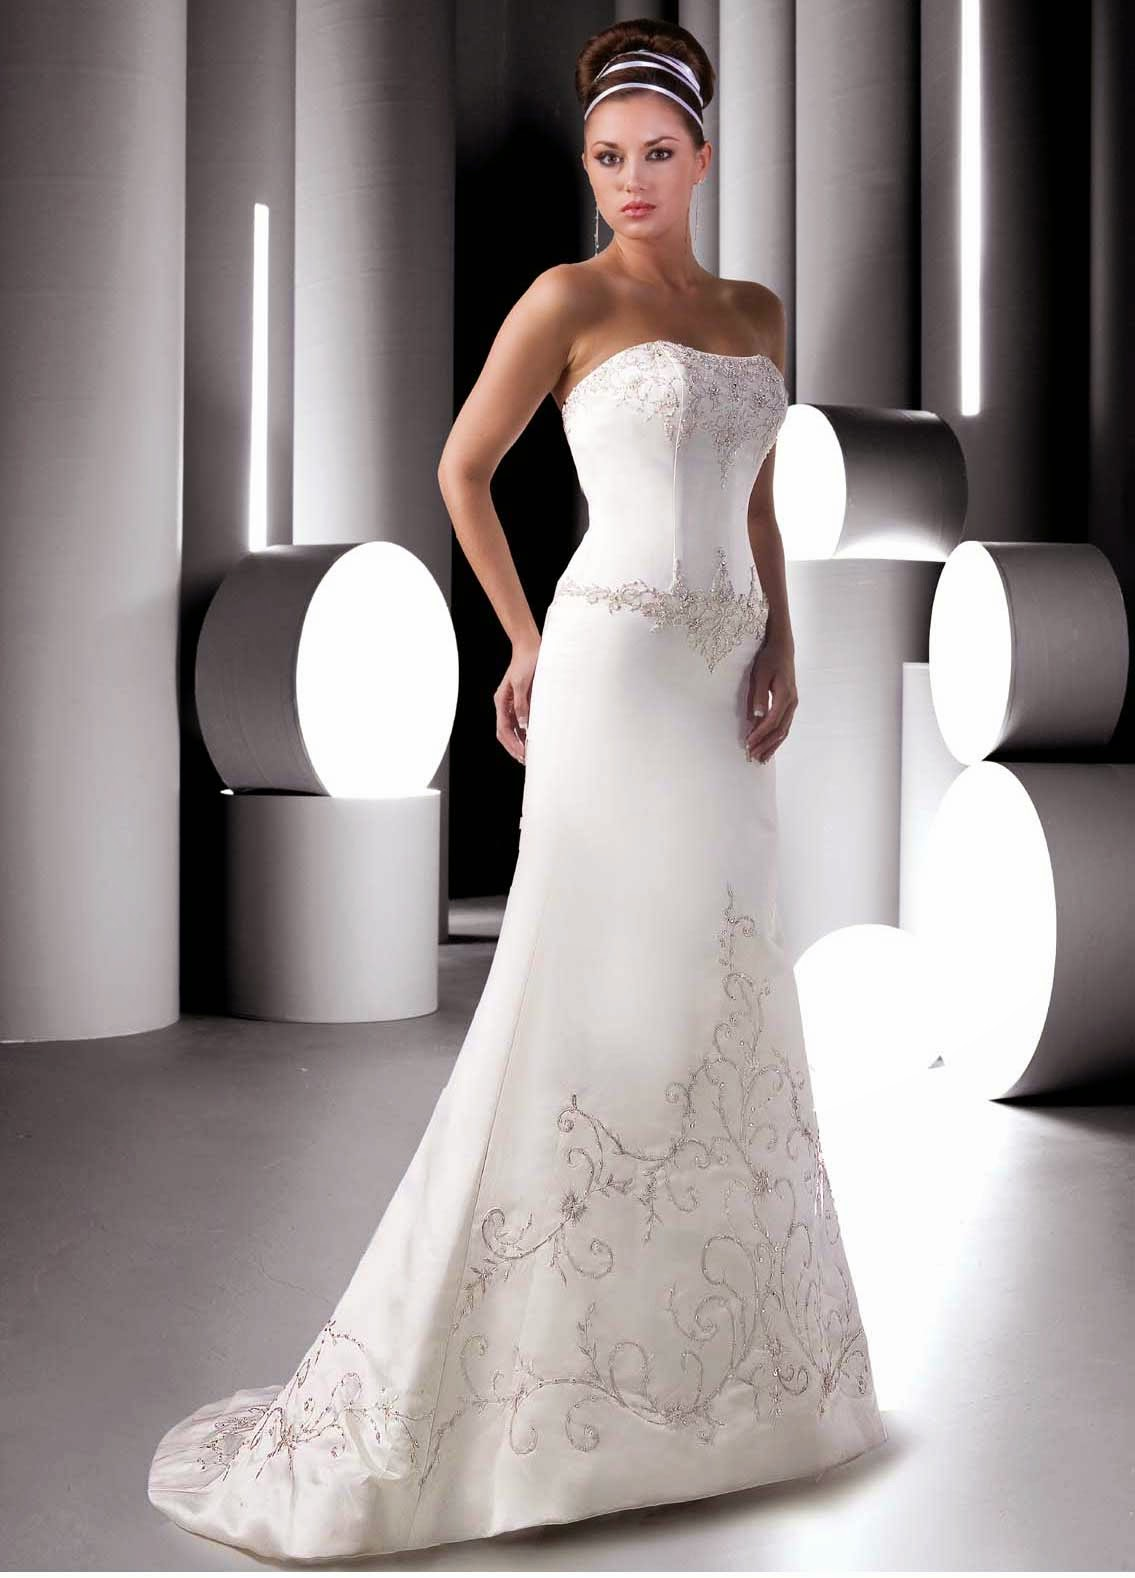 Designer Lace Wedding Dresses Photos HD Concepts Ideas